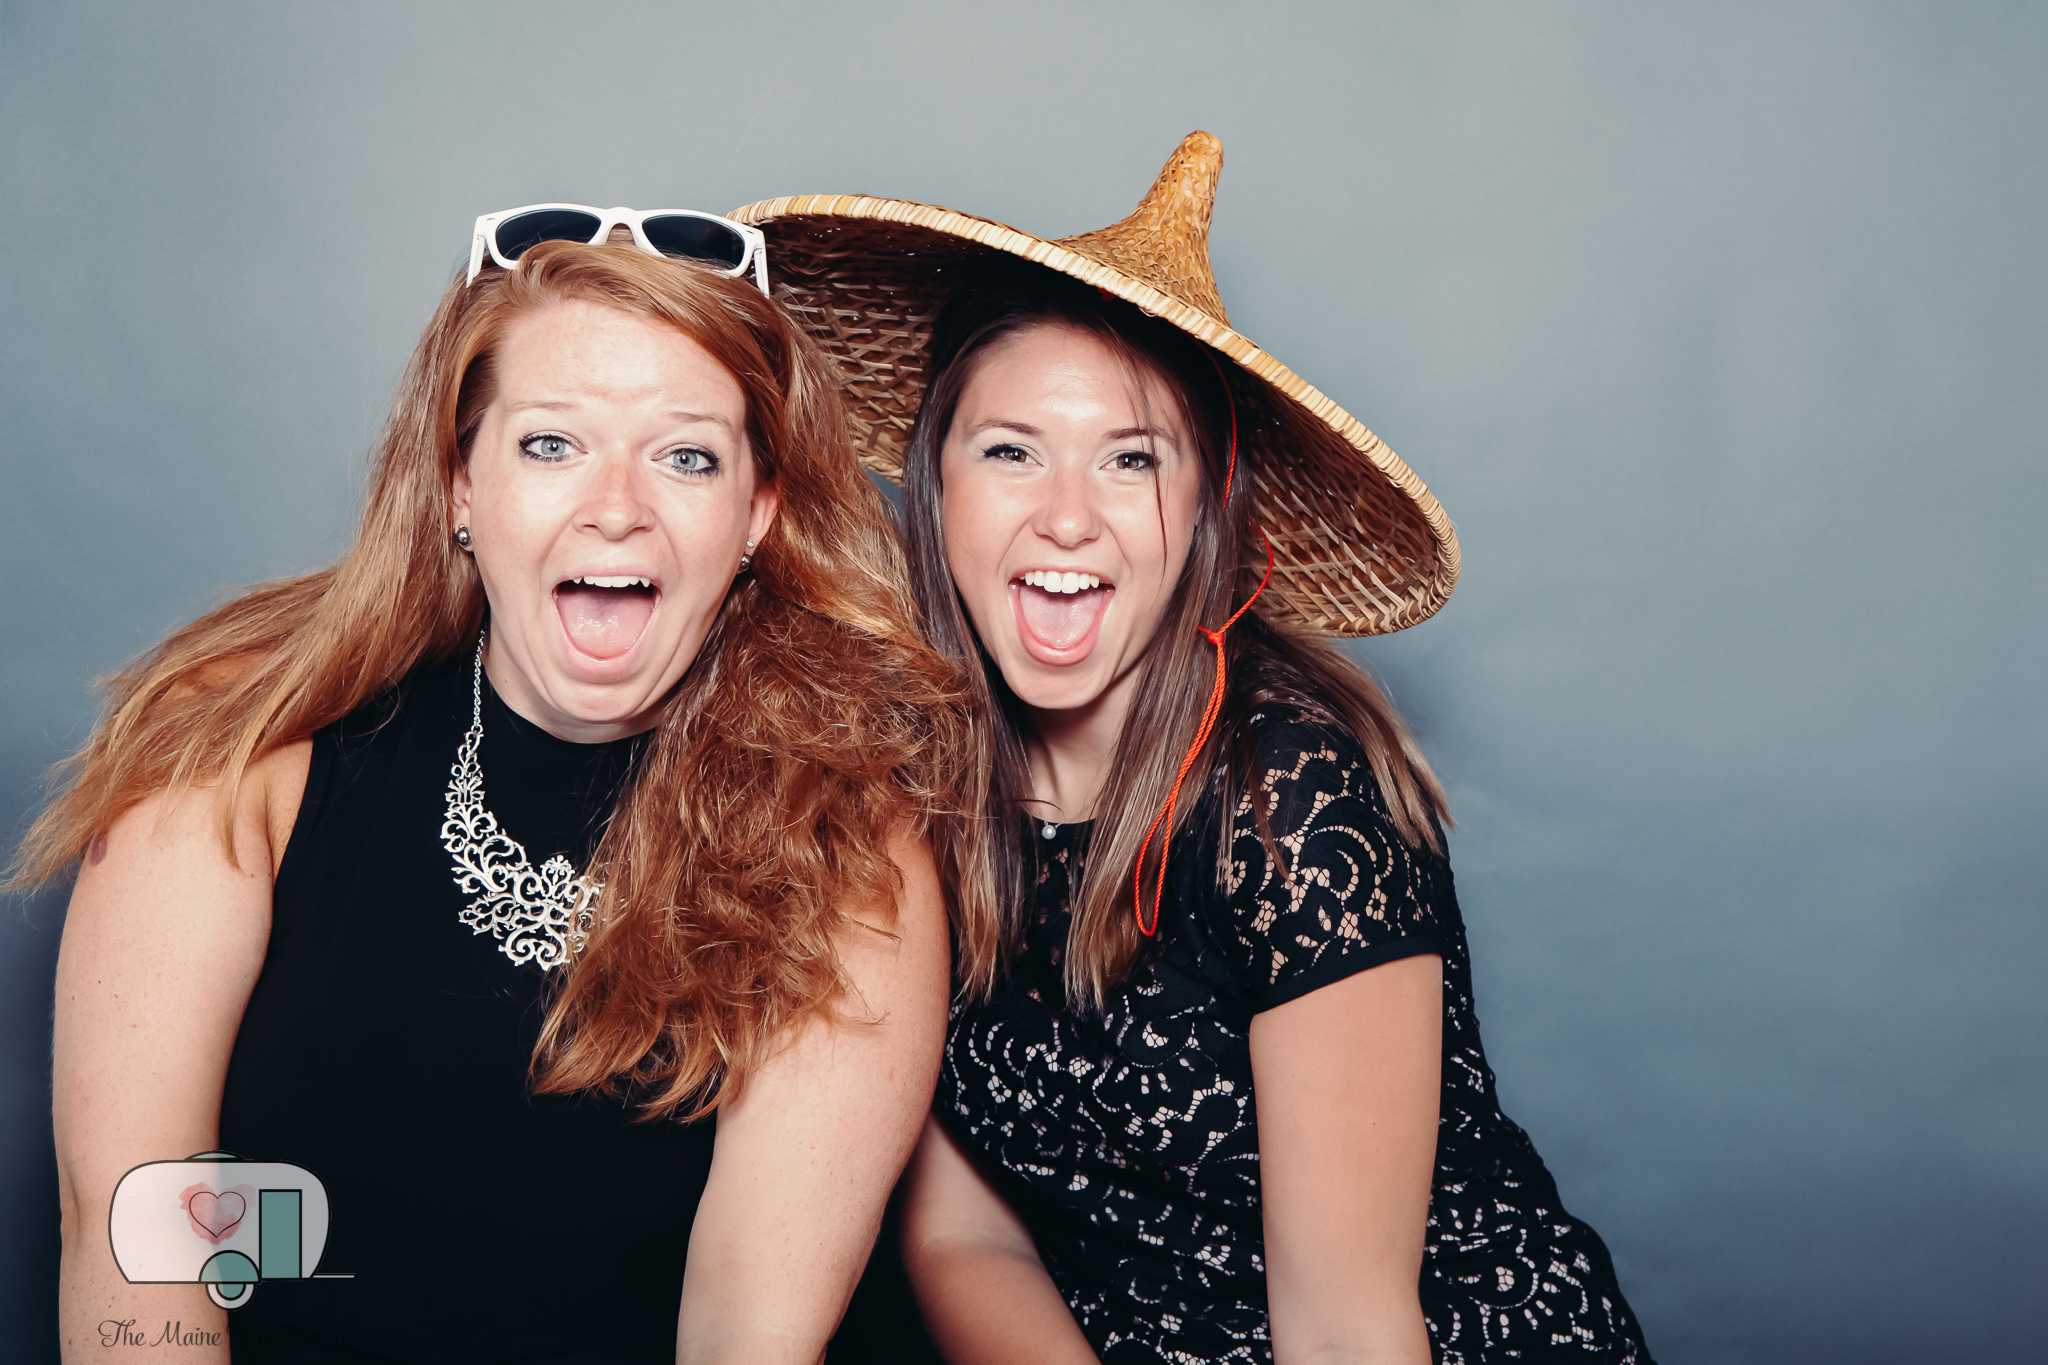 THE MAINE PHOTO CAMPER, MAINE PHOTO BOOTH RENTAL, MAINE TINKER PHOTOGRAPHY, JOSIAS FARM, CAPE NEDDICK WEDDING -2-21.jpg